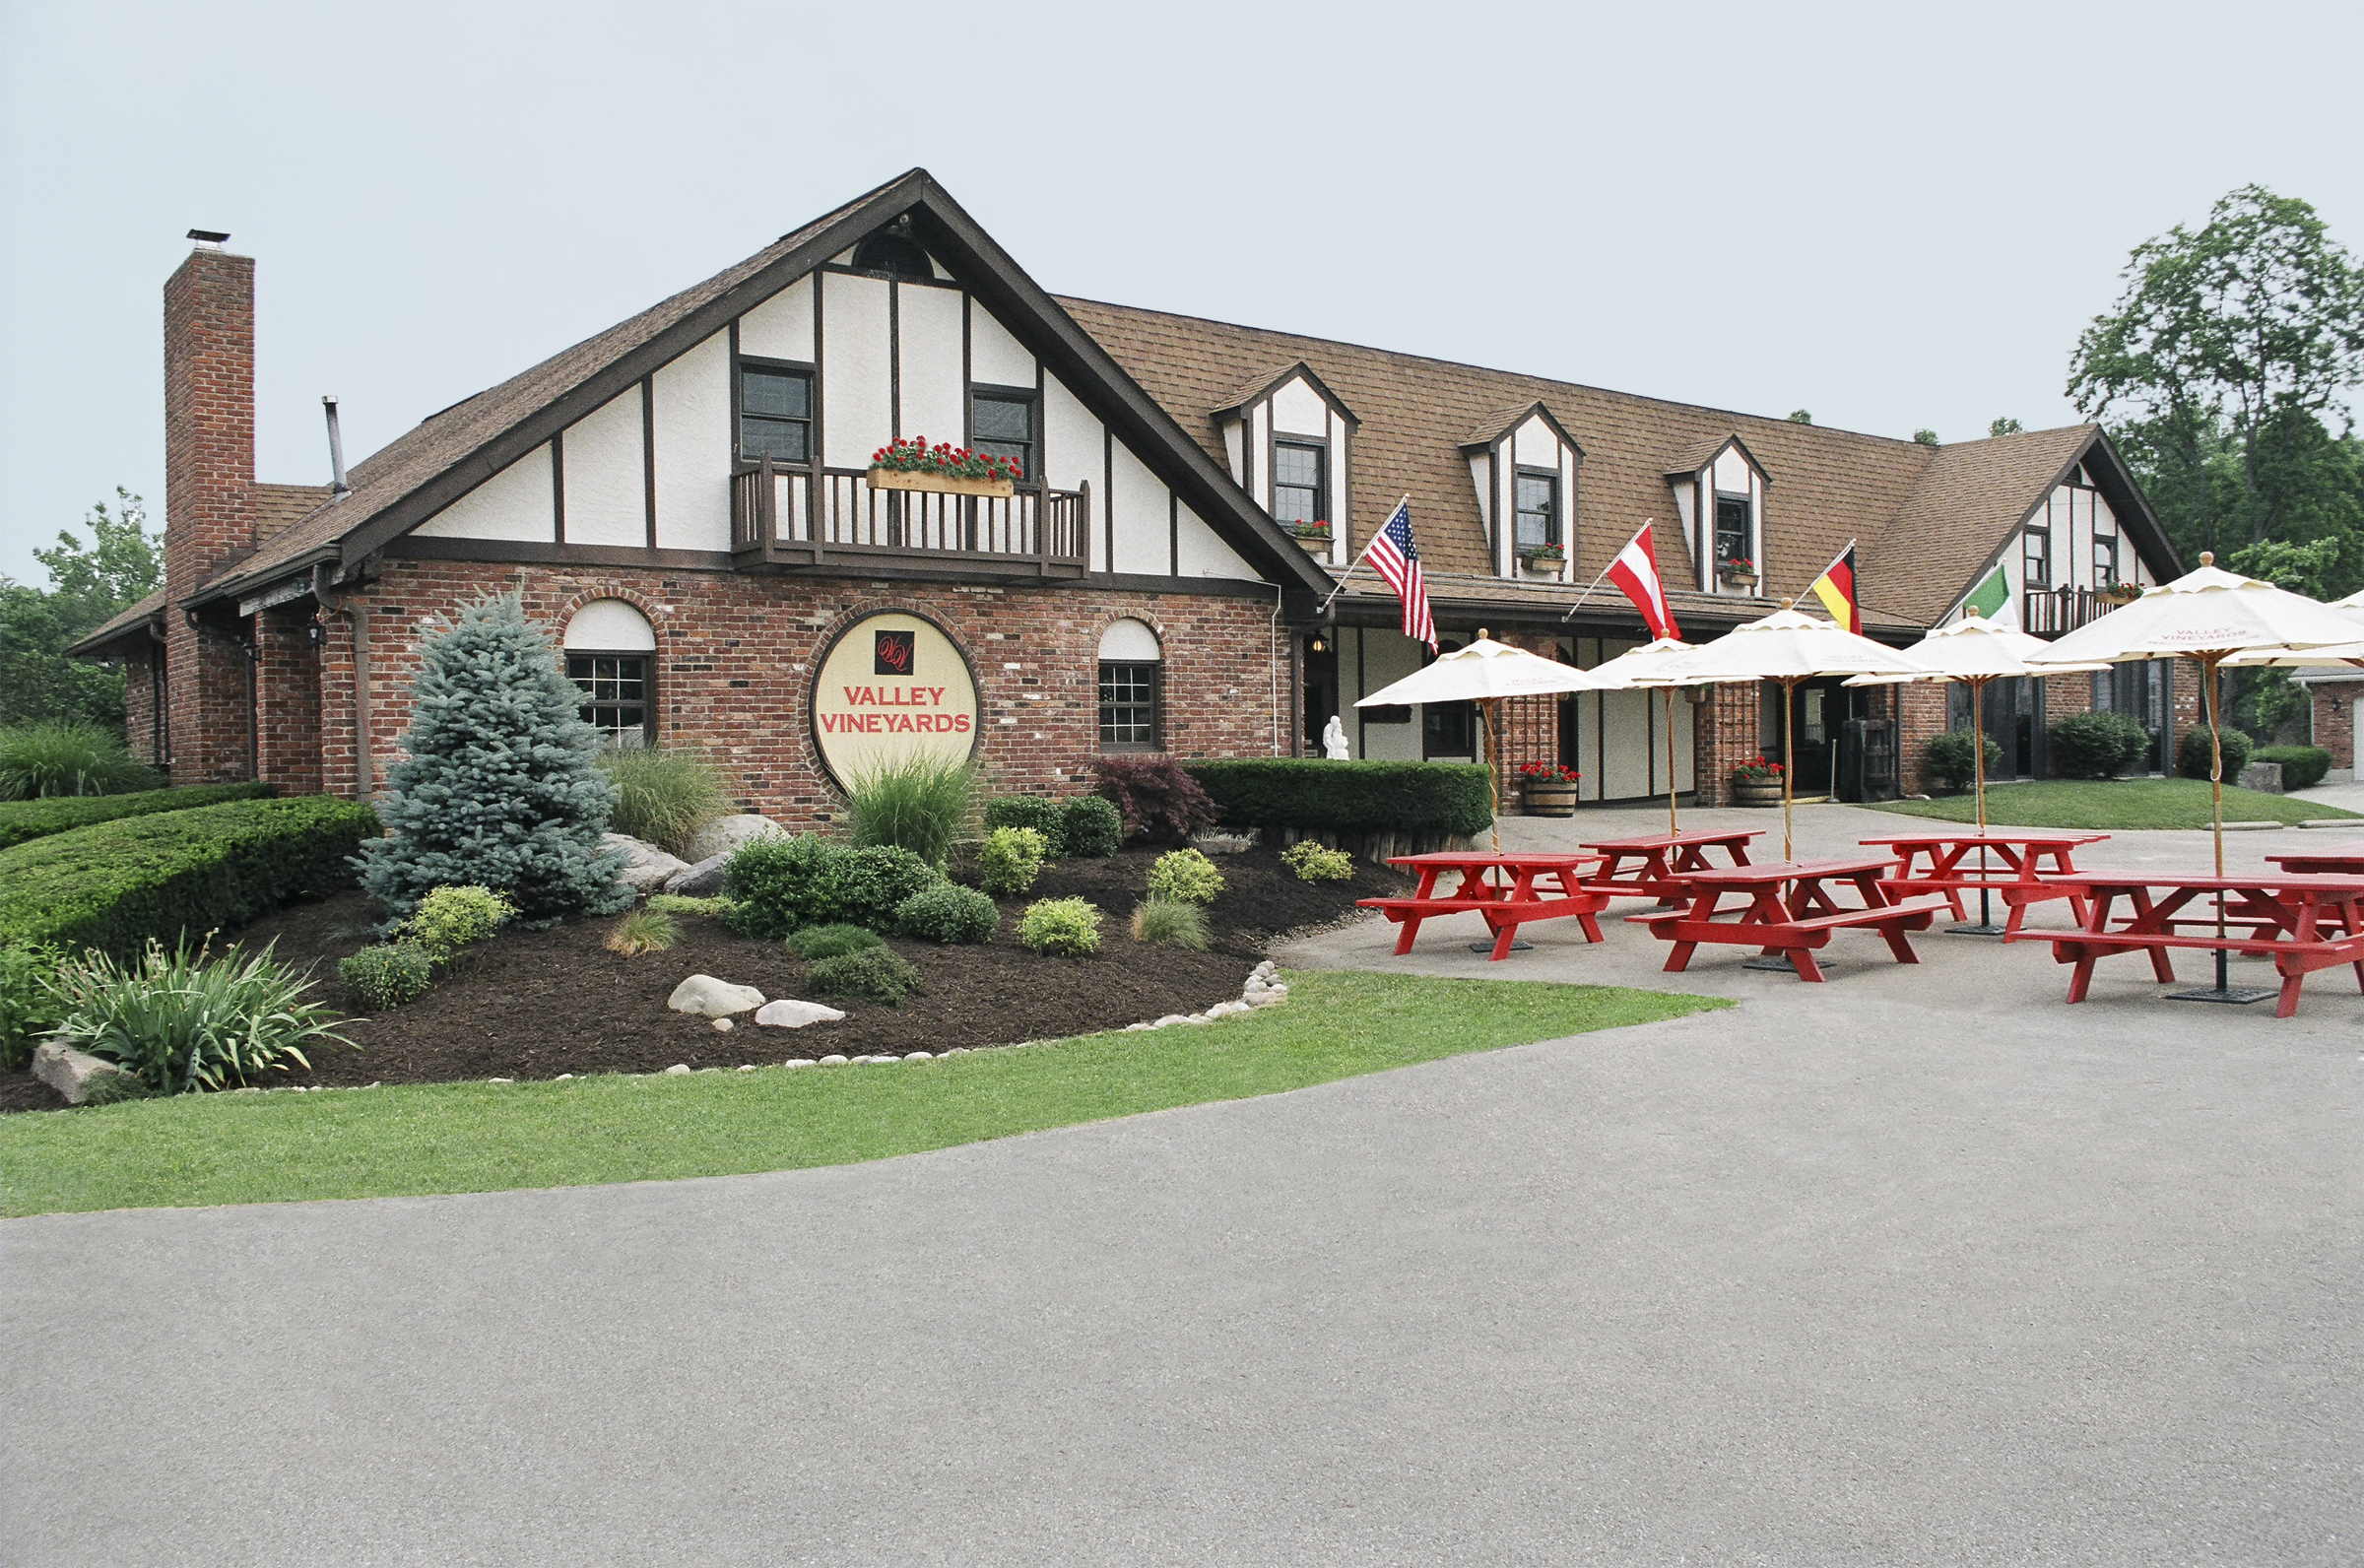 - 2276 E US 22 & 3 Morrow, Ohio 45152Click for Map(513)899-2485valleyvineyards.comOhio River Valley Wine TrailWarren County